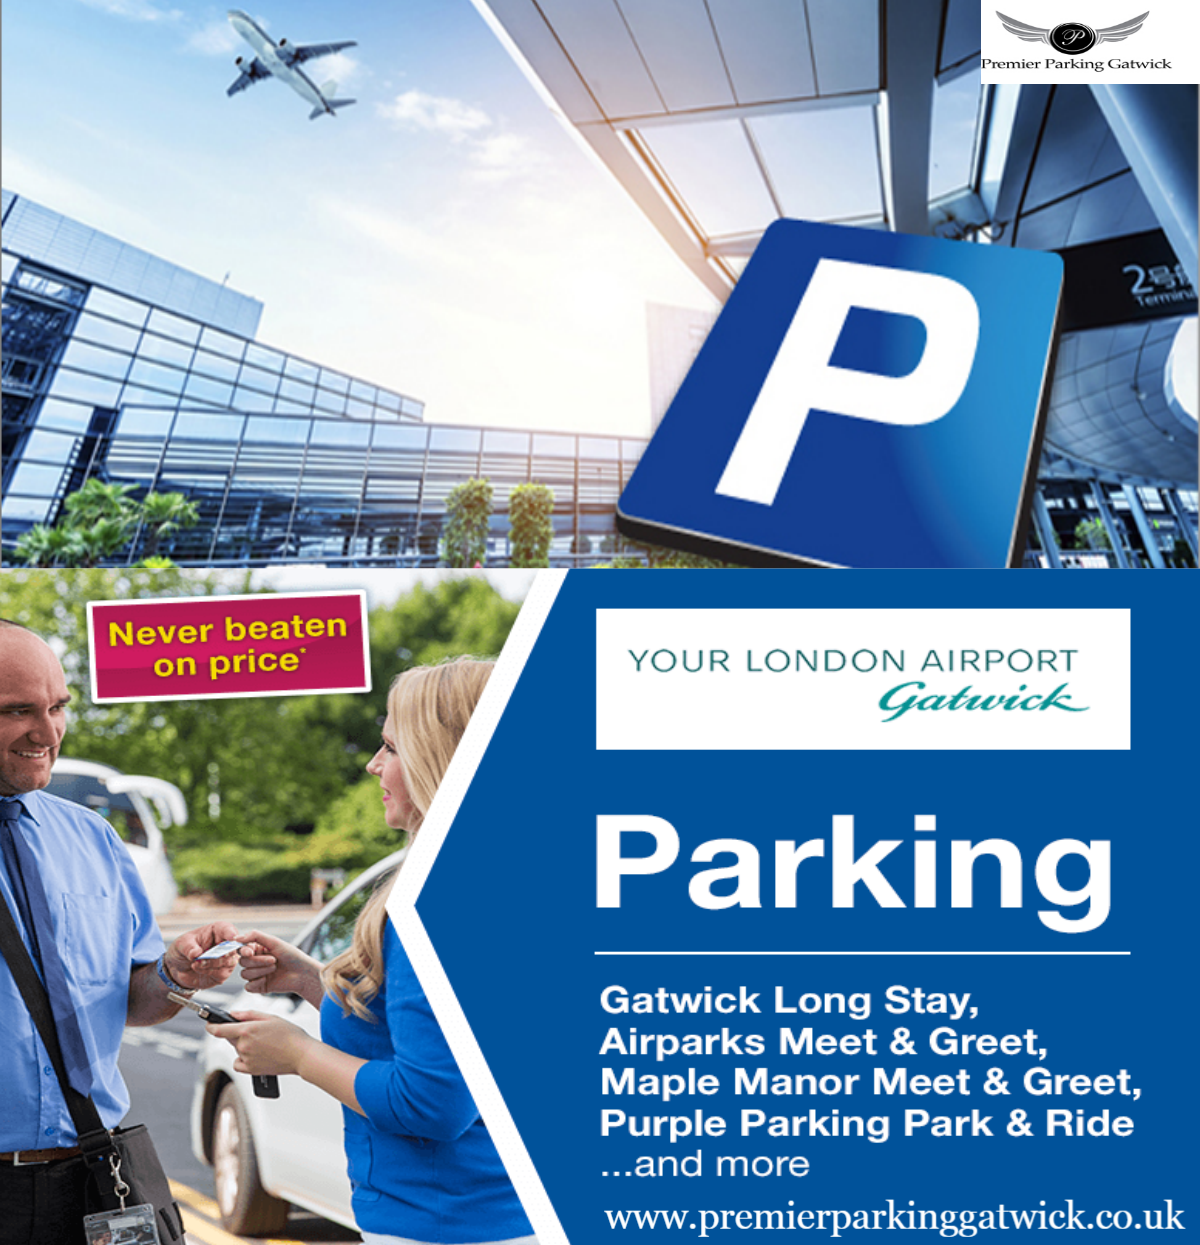 Meet And Greet Gatwick See More At Premierparkinggatwick